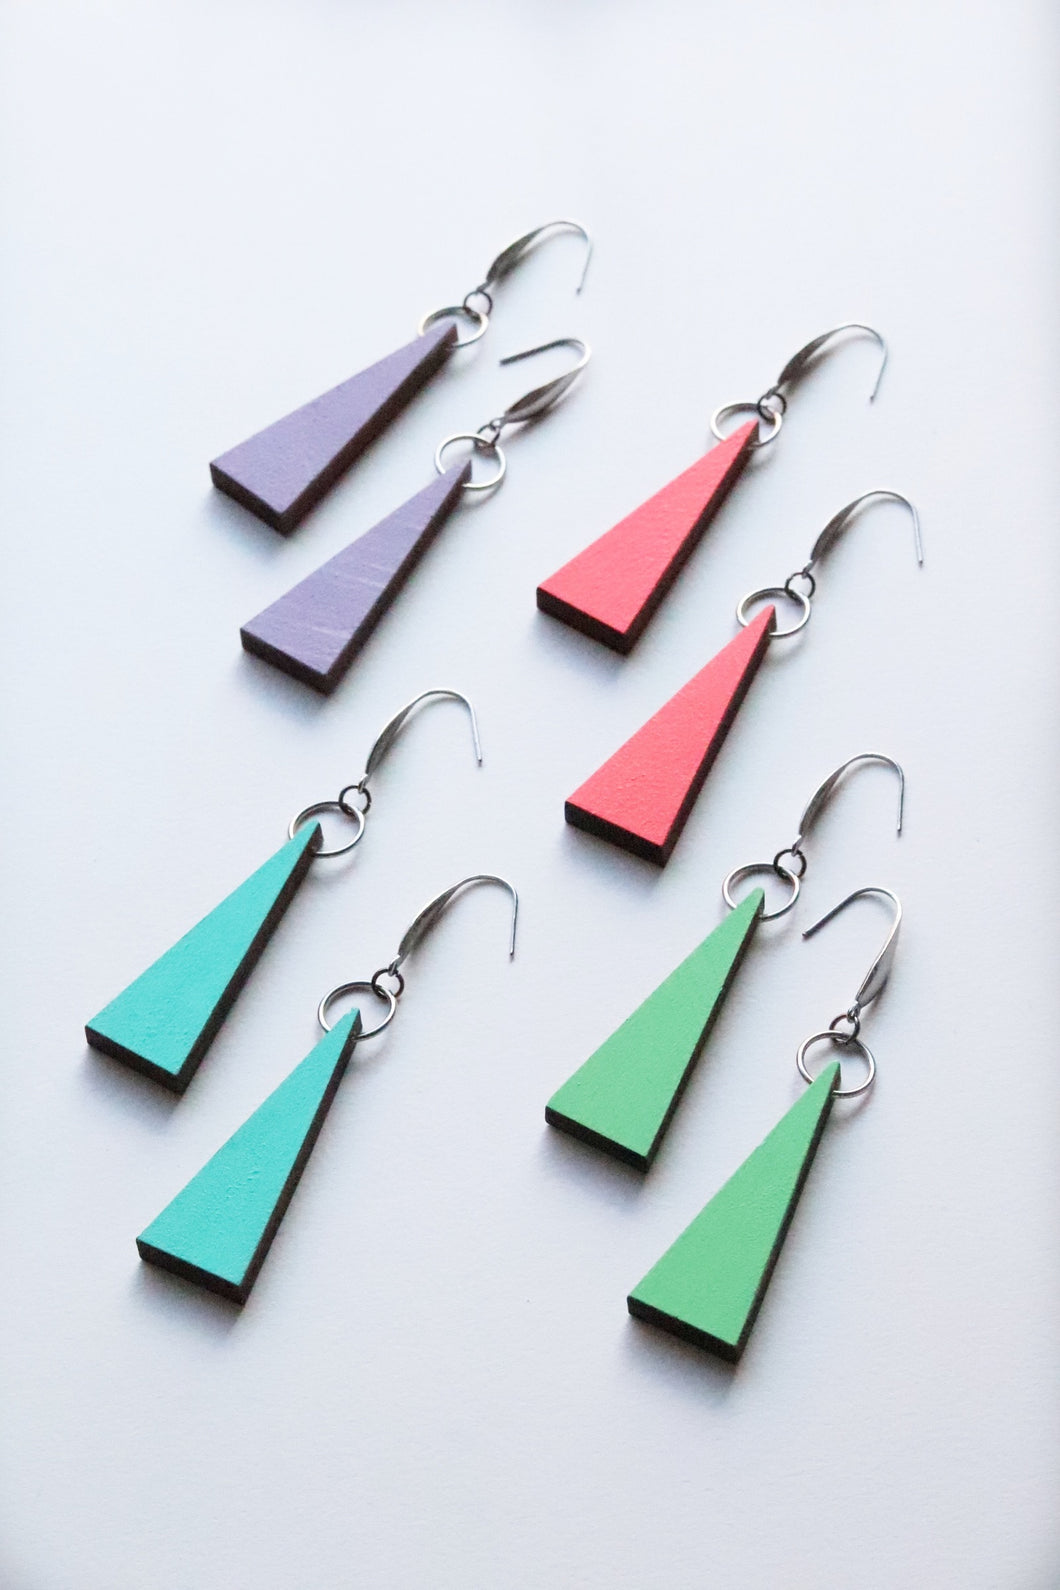 4 Pairs of Triangle earrings